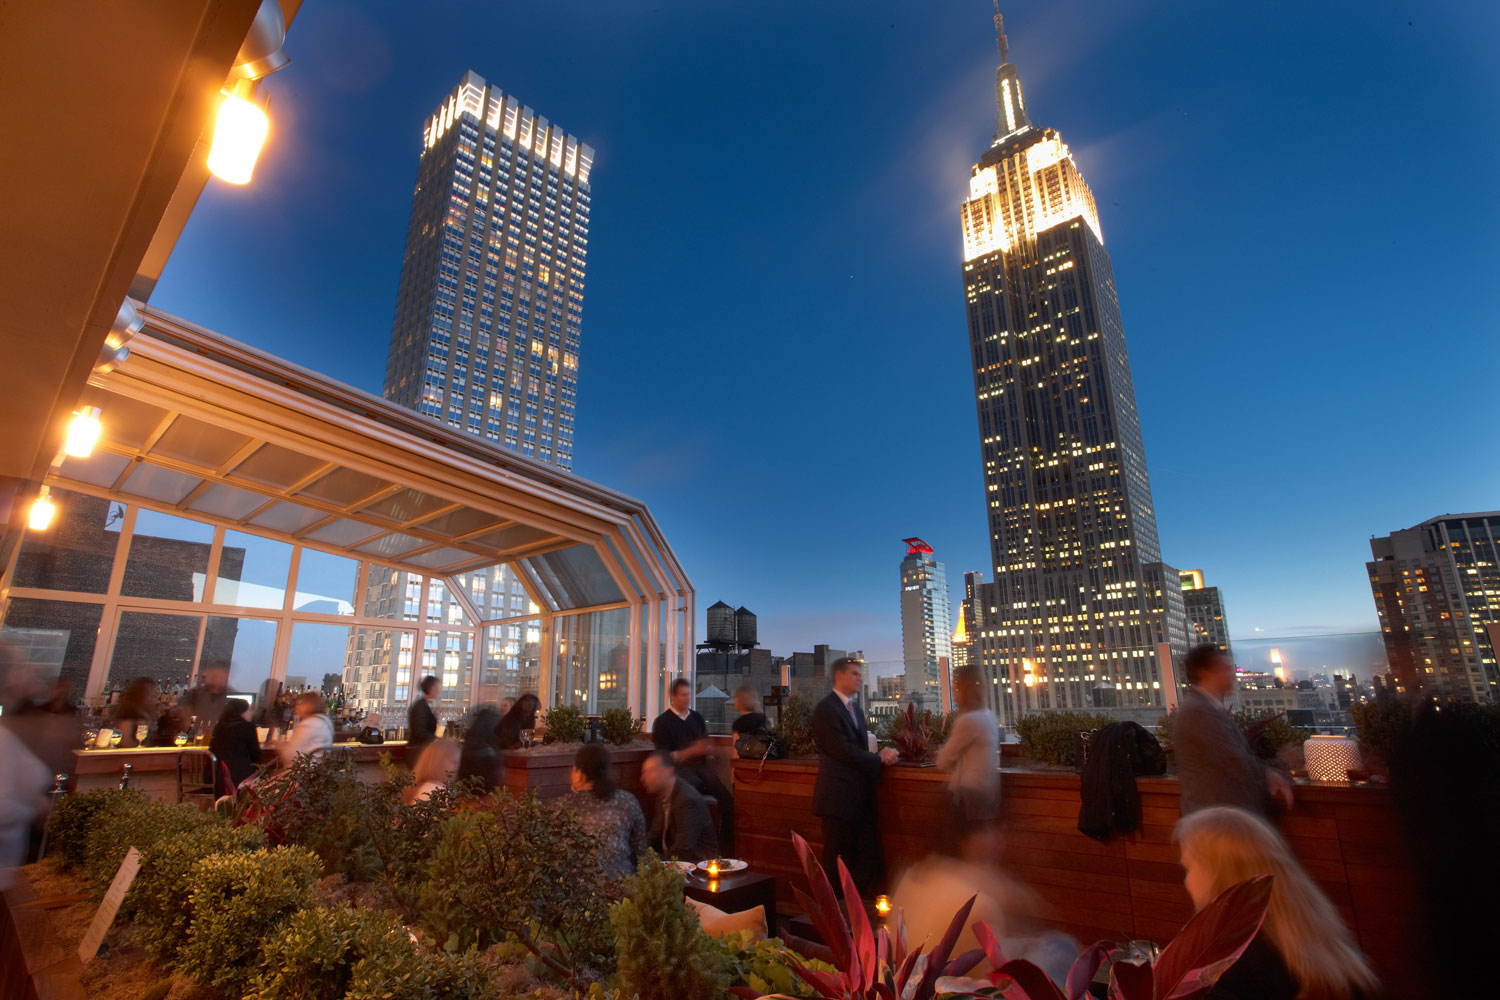 Corra Hosts pre-WWD Fashion Networking Event, The Strand Hotel Rooftop, New York